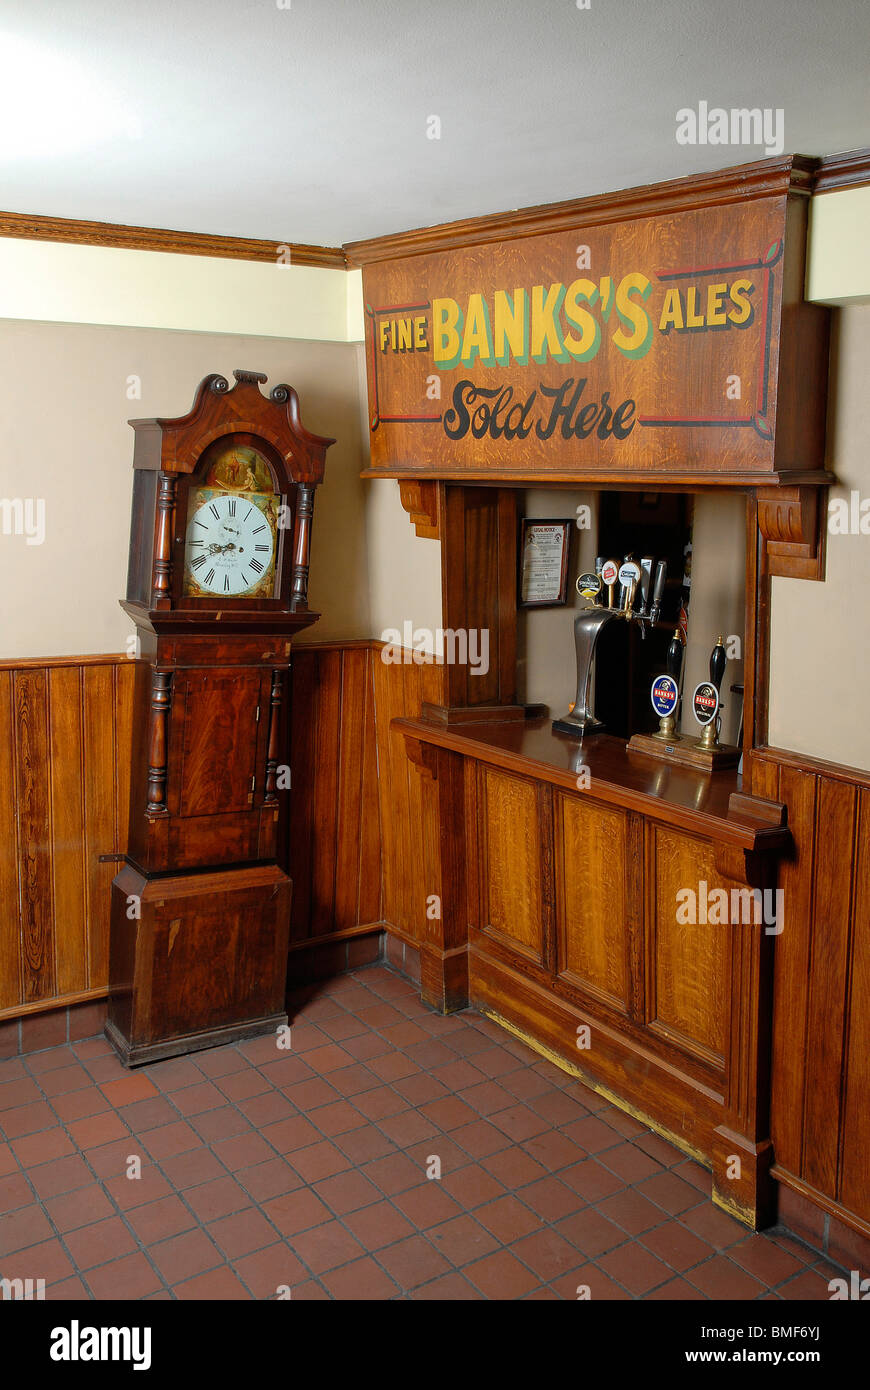 Bar Inside The Crooked House Pub In Himley, Gornal Wood, West Midlands    Stock